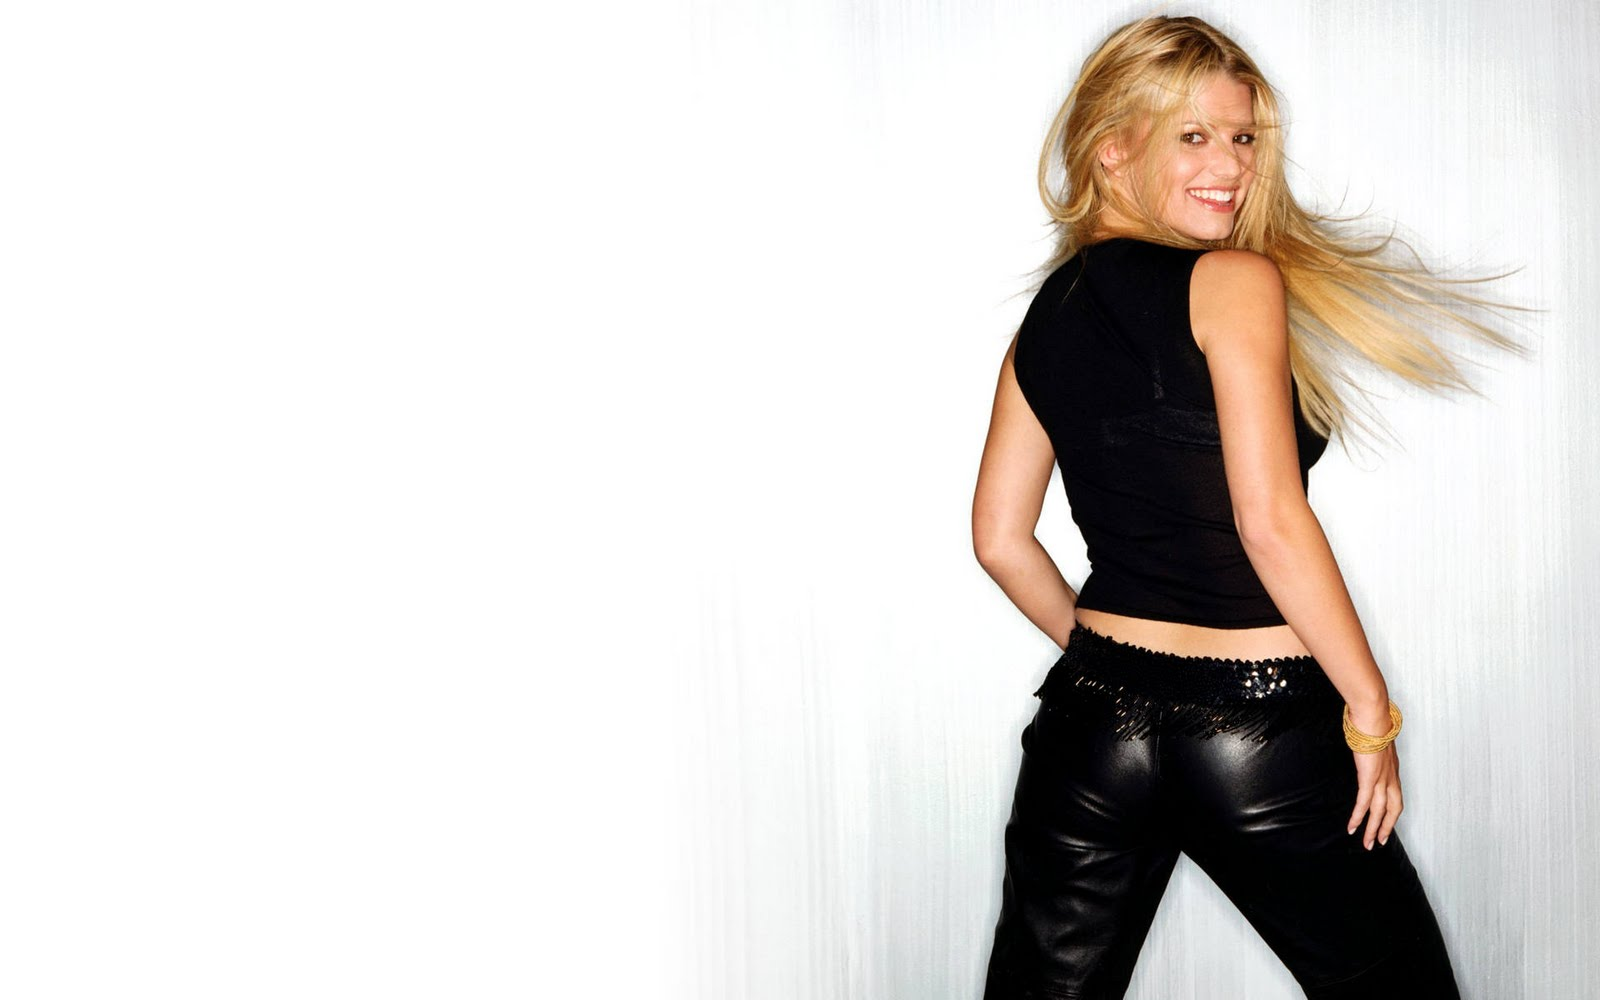 Jessica Simpson Actress Singer Wallpaper Taste Wallpapers 1600x1000